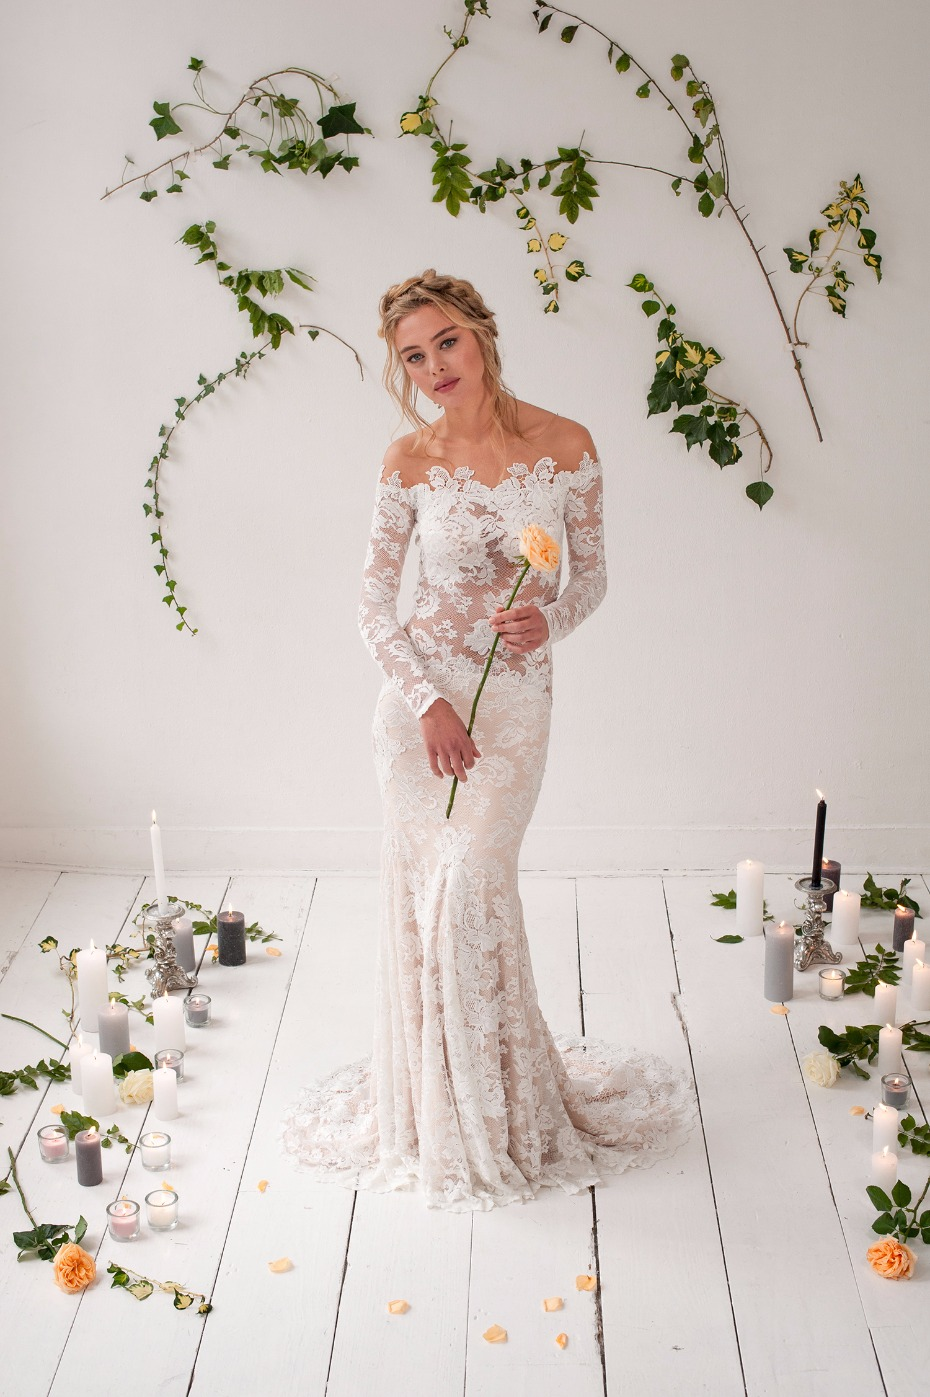 Gorgeous lace gown from Olvi's